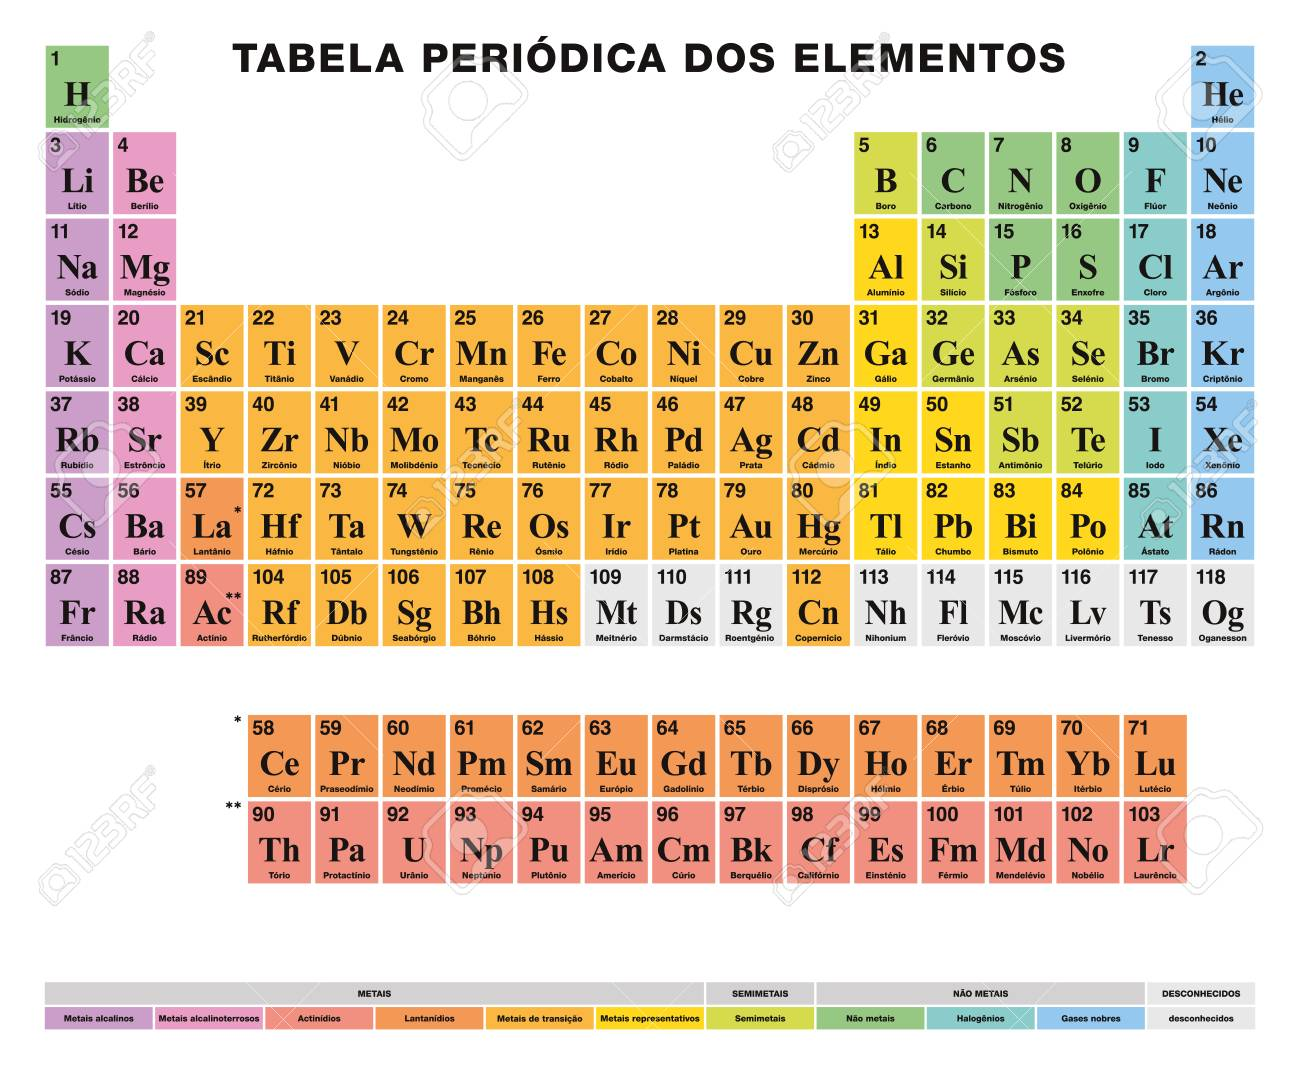 Periodic table of the elements portuguese labeling tabular periodic table of the elements portuguese labeling tabular arrangement 118 chemical elements urtaz Image collections